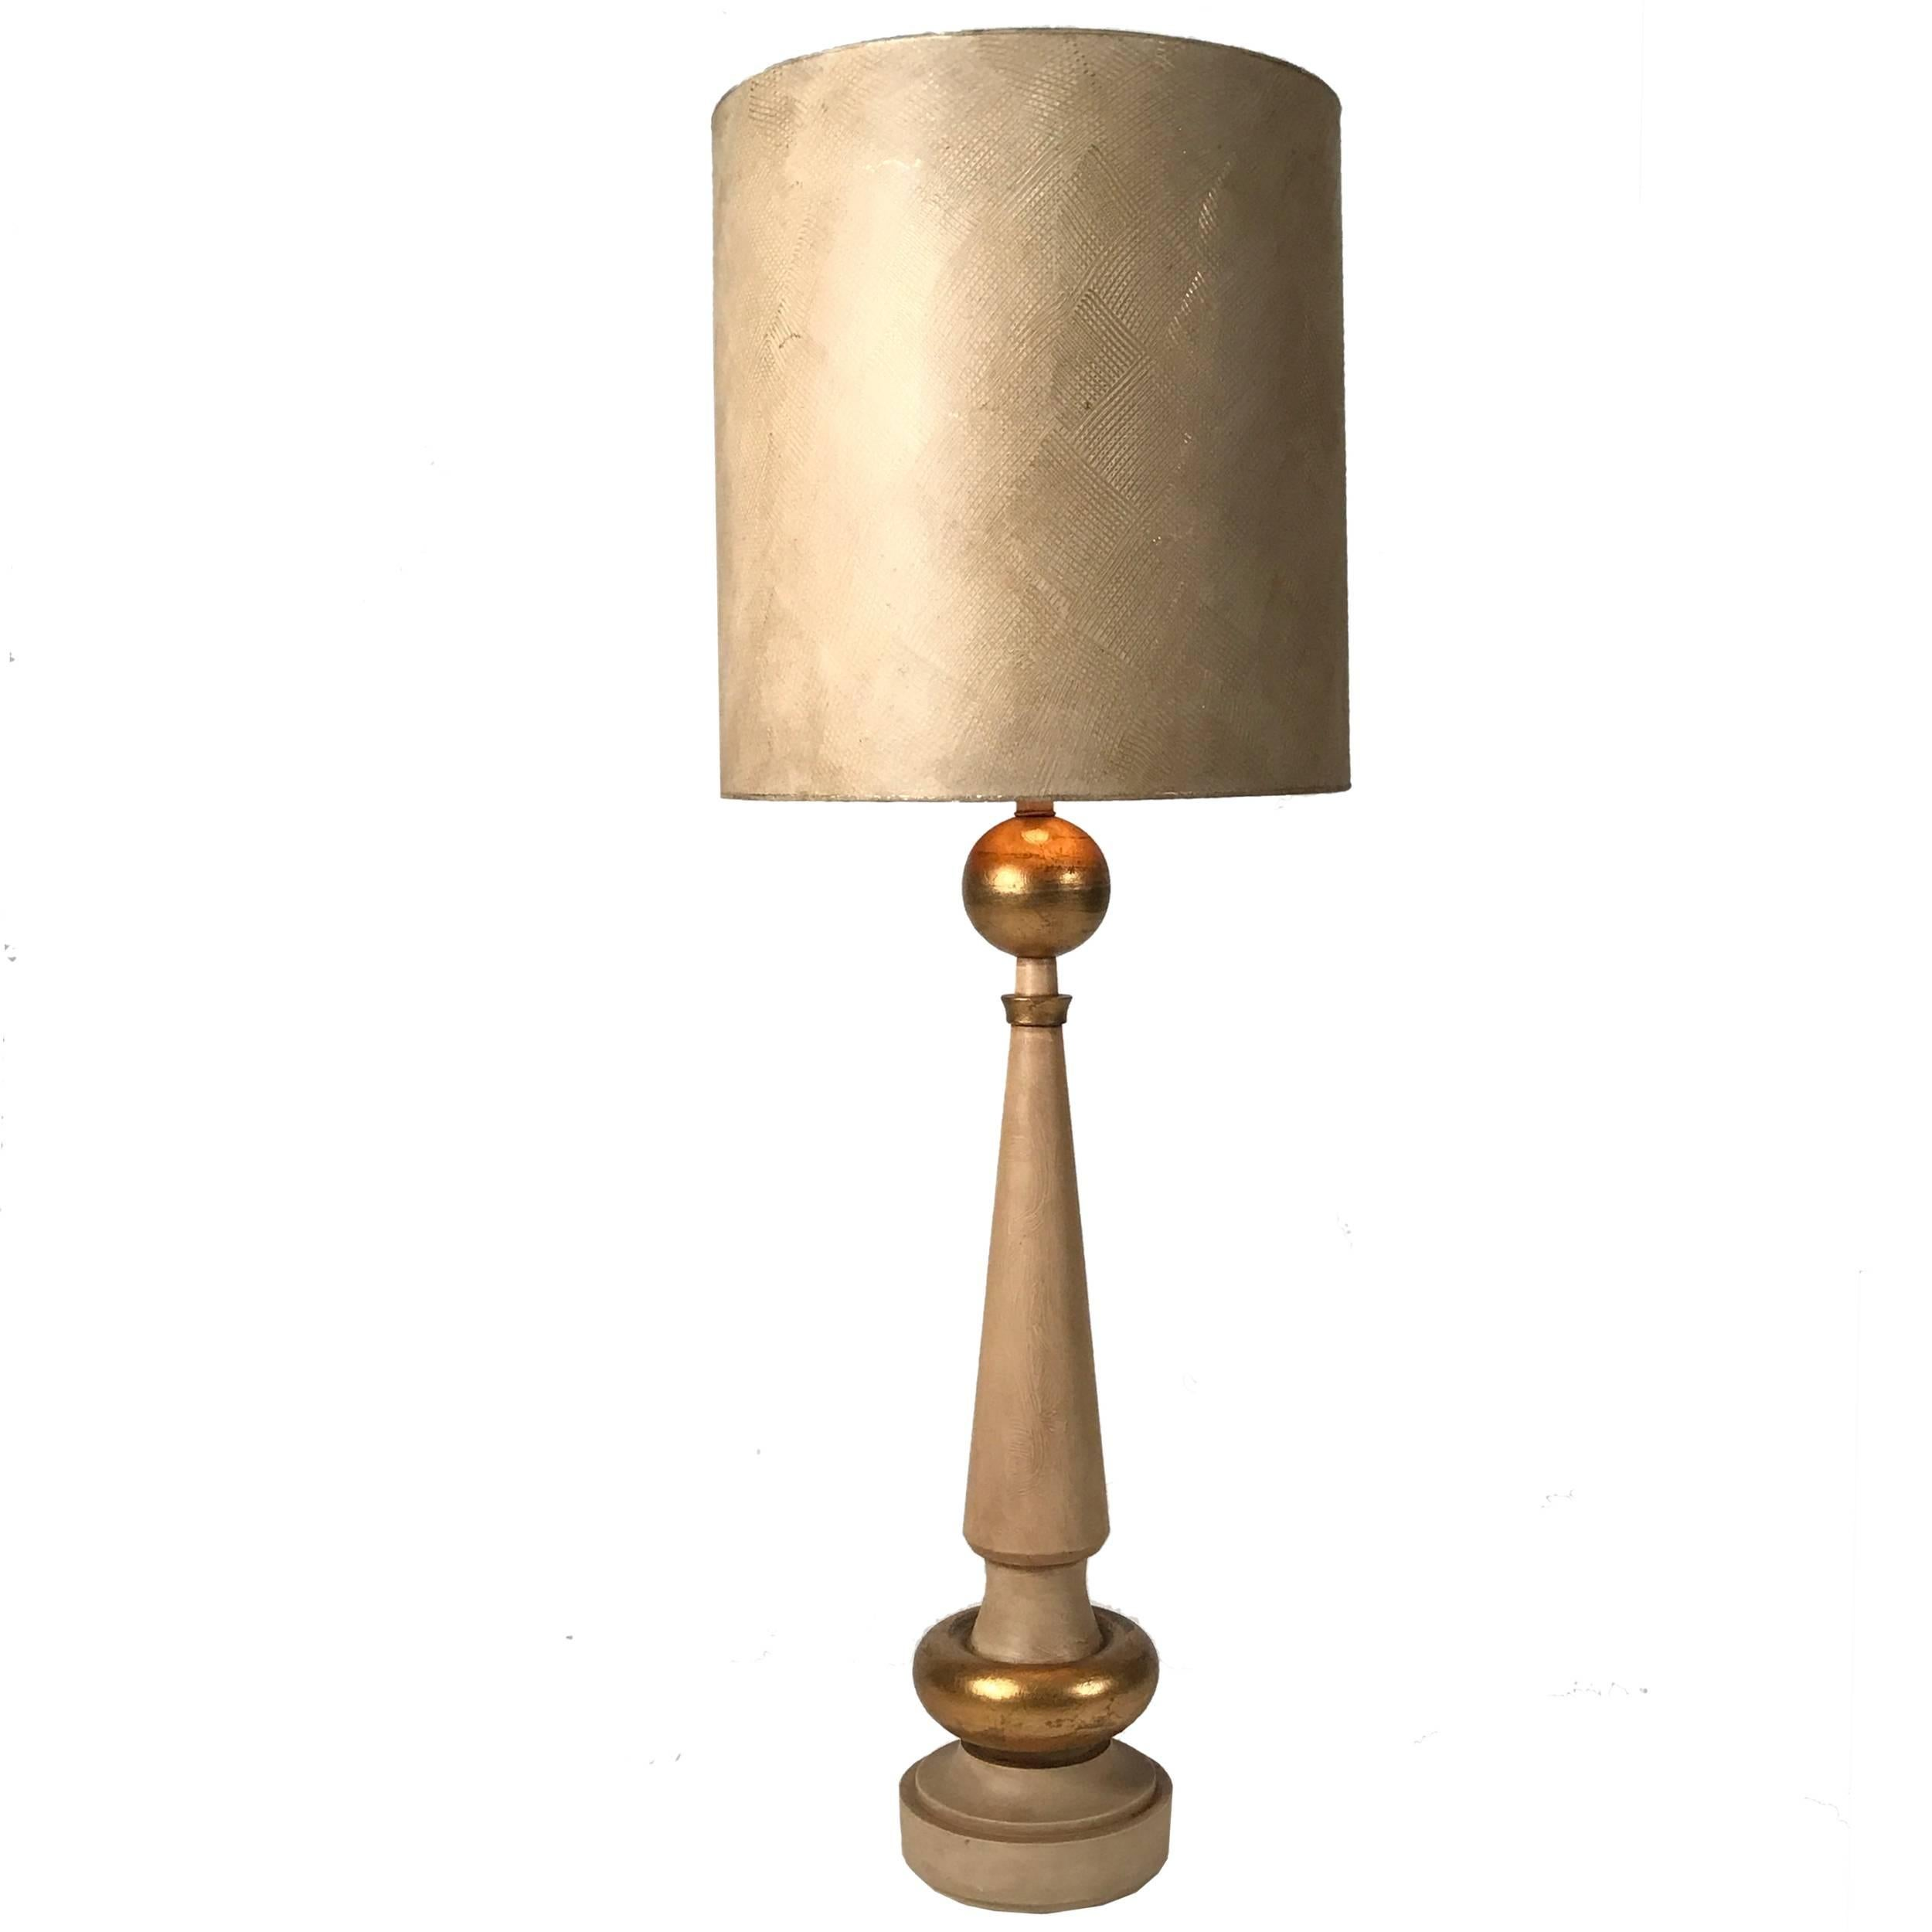 Monumental 1950s Regency Torchiere Lamp in the Manner of James Mont